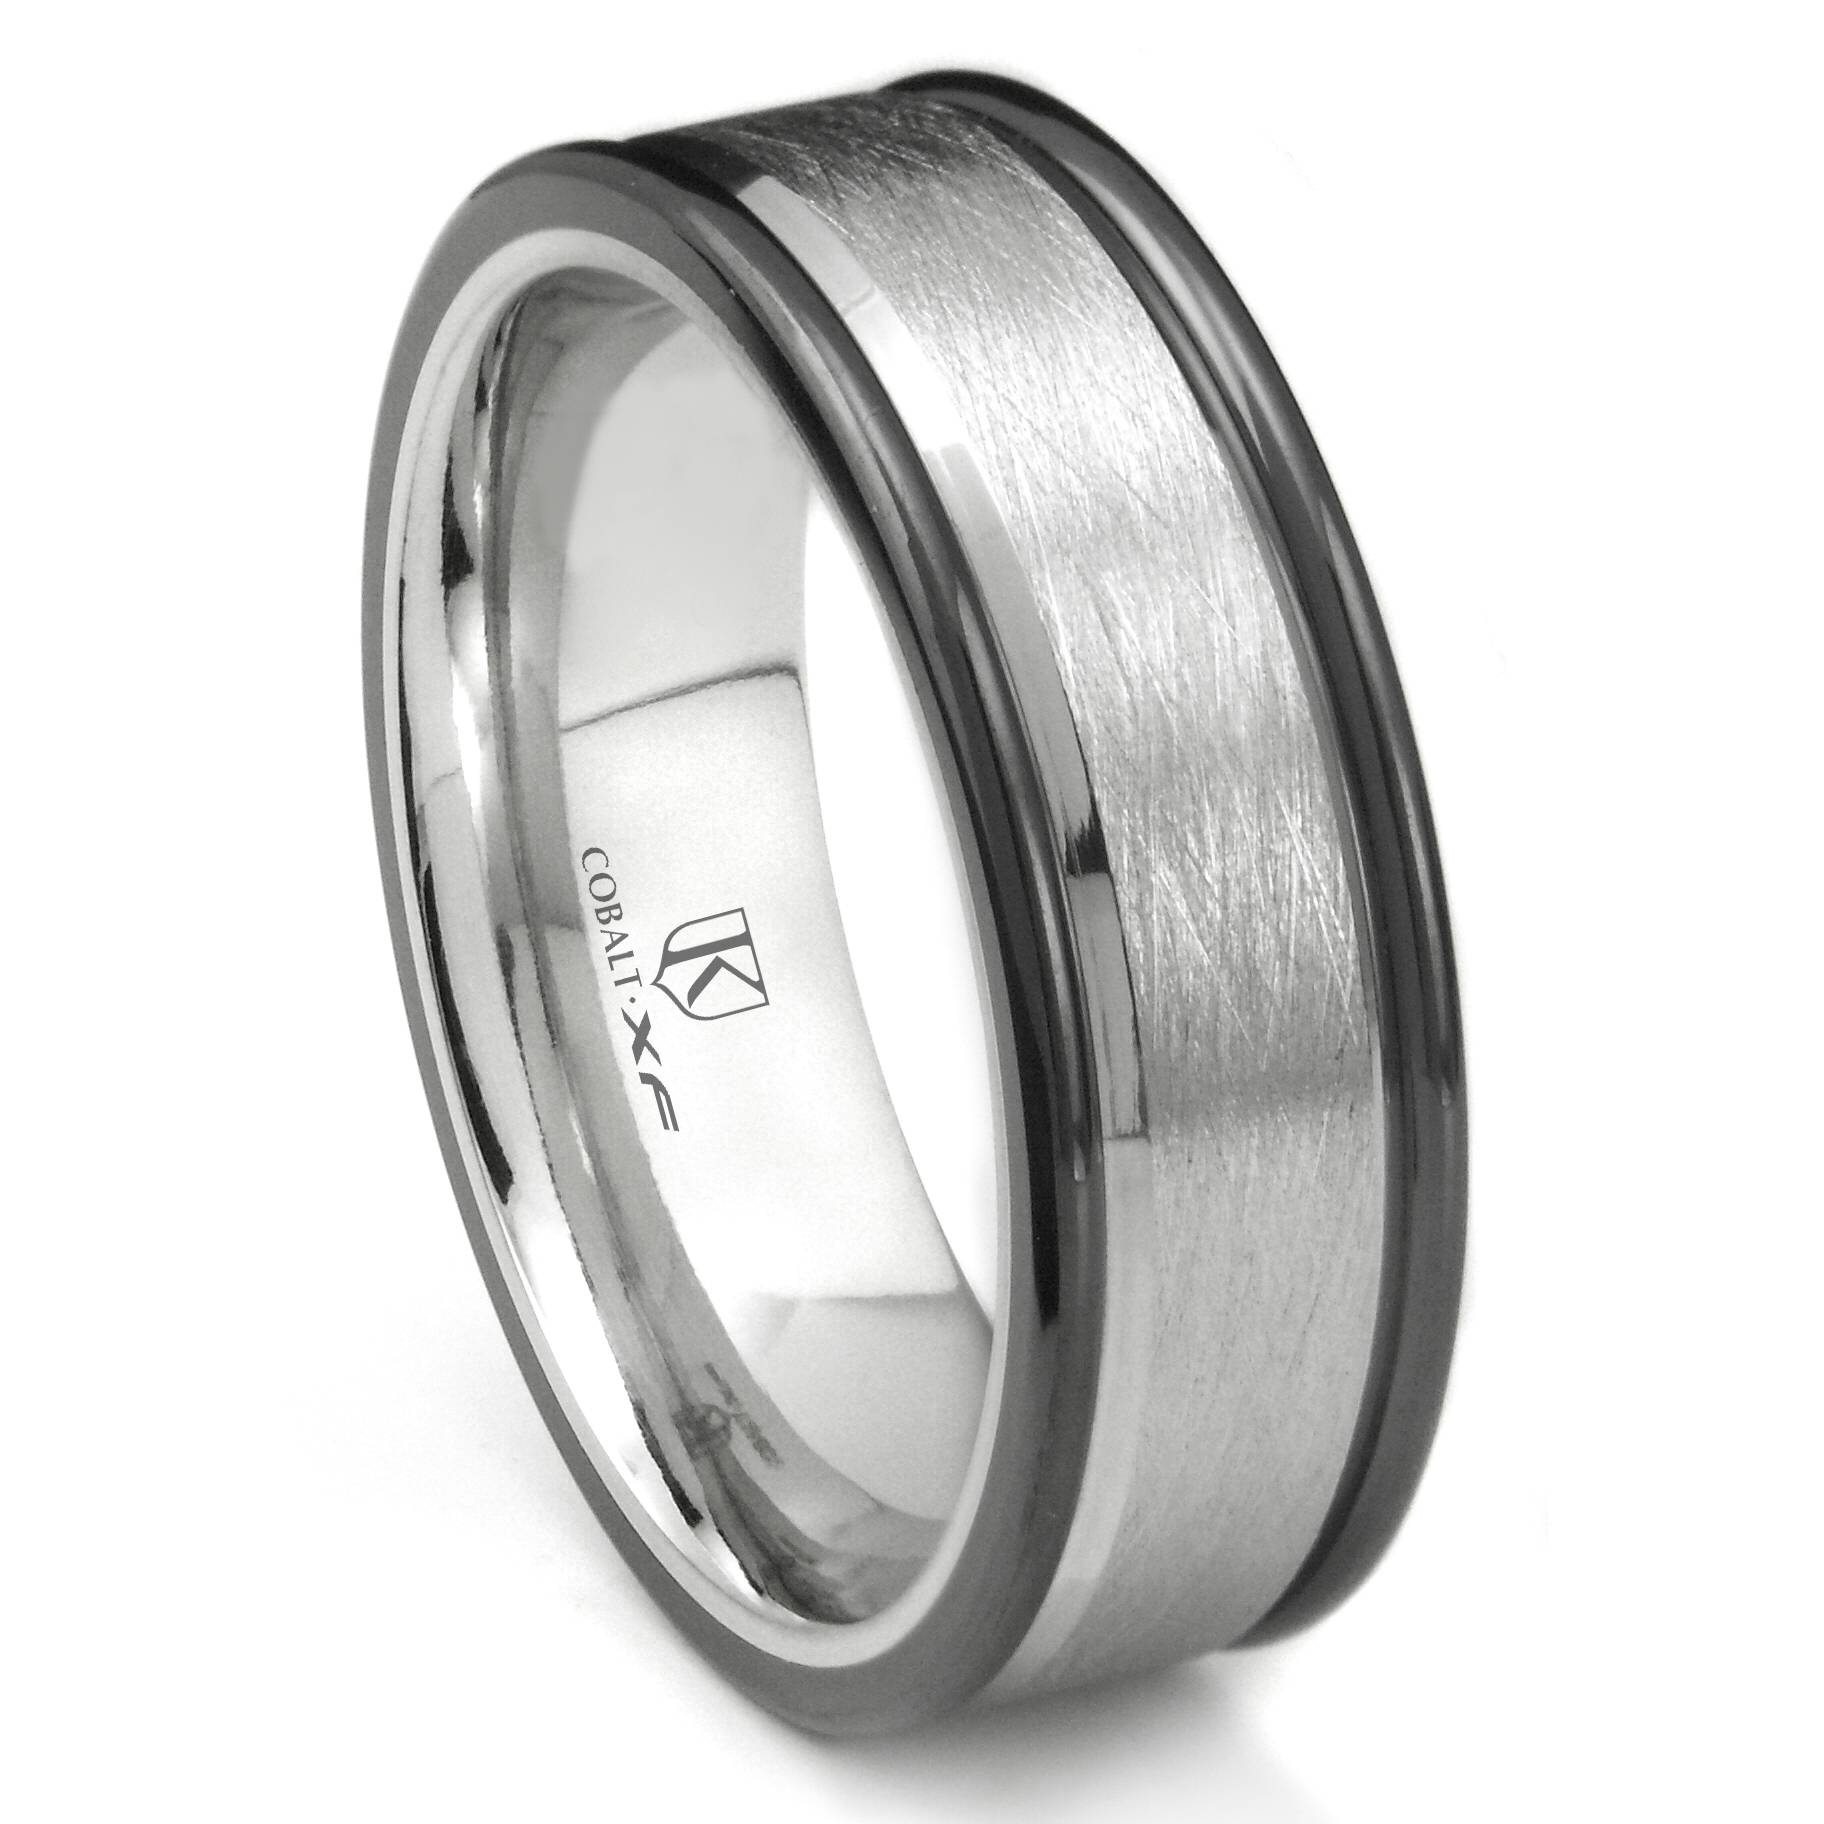 Cobalt Xf Chrome 8Mm Italian Di Seta Finish Two Tone Wedding Band Ring With Two Tone Men Wedding Bands (View 3 of 15)